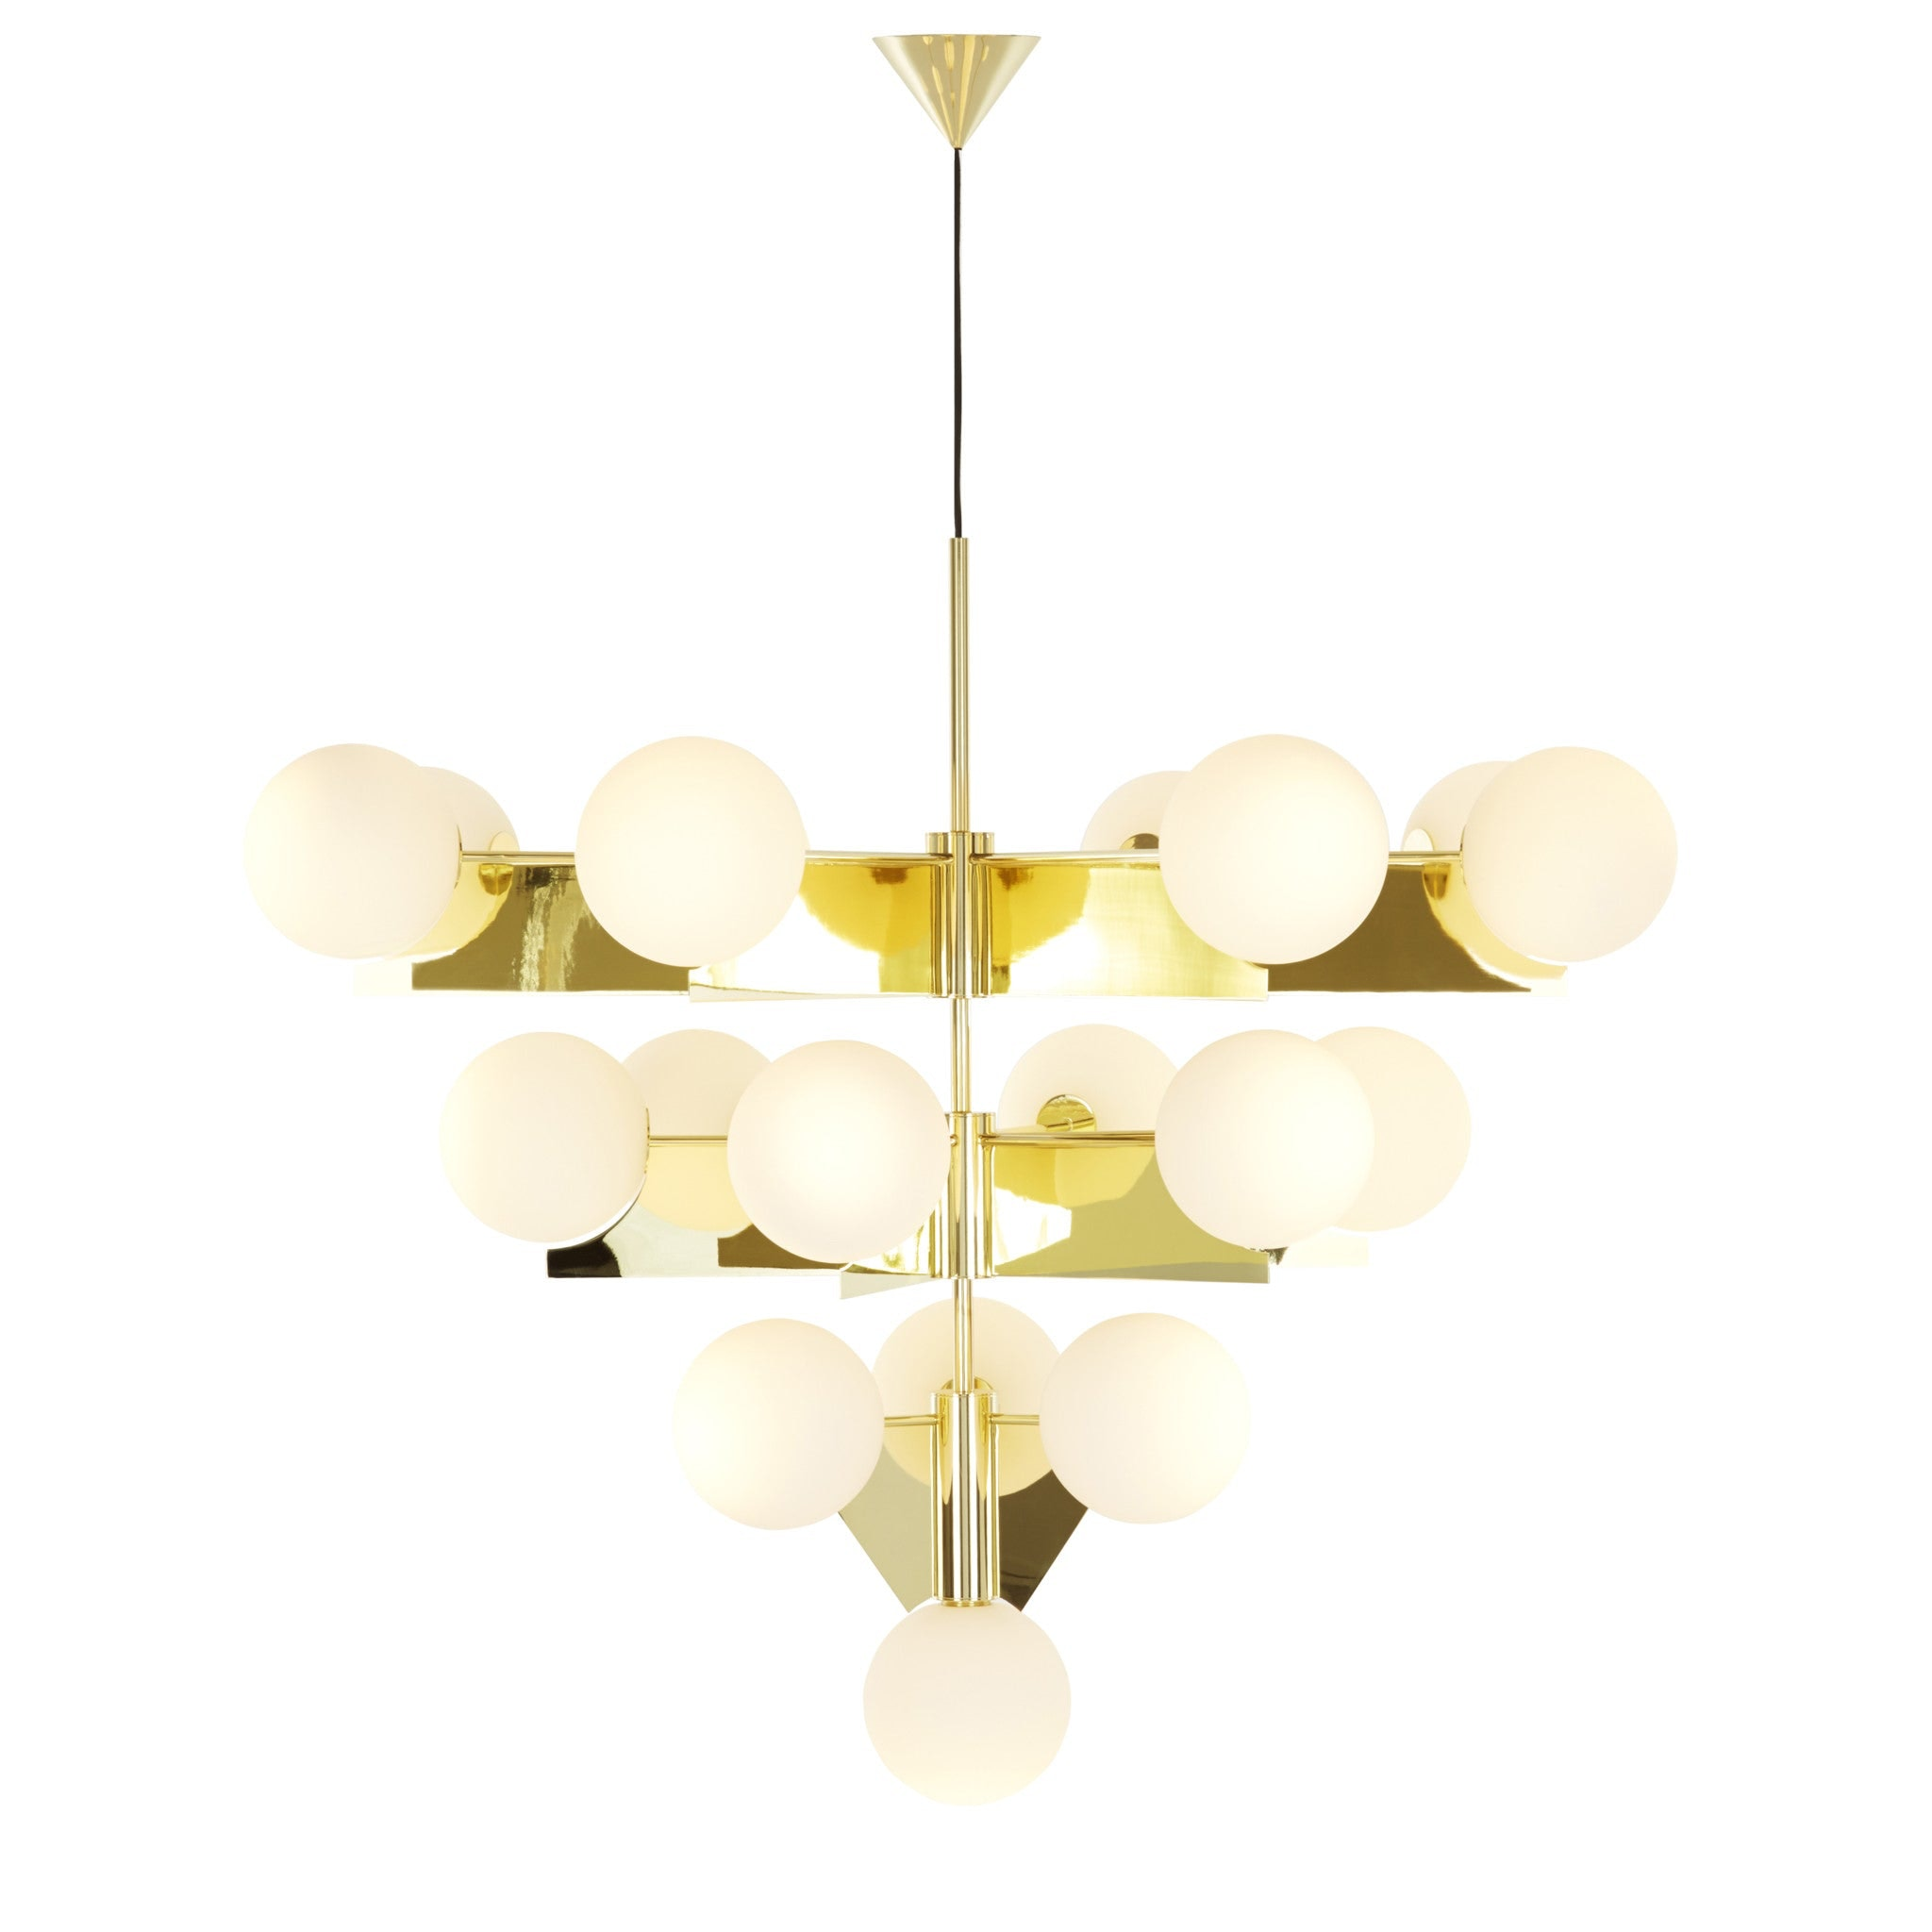 Plane Chandelier by Tom Dixon